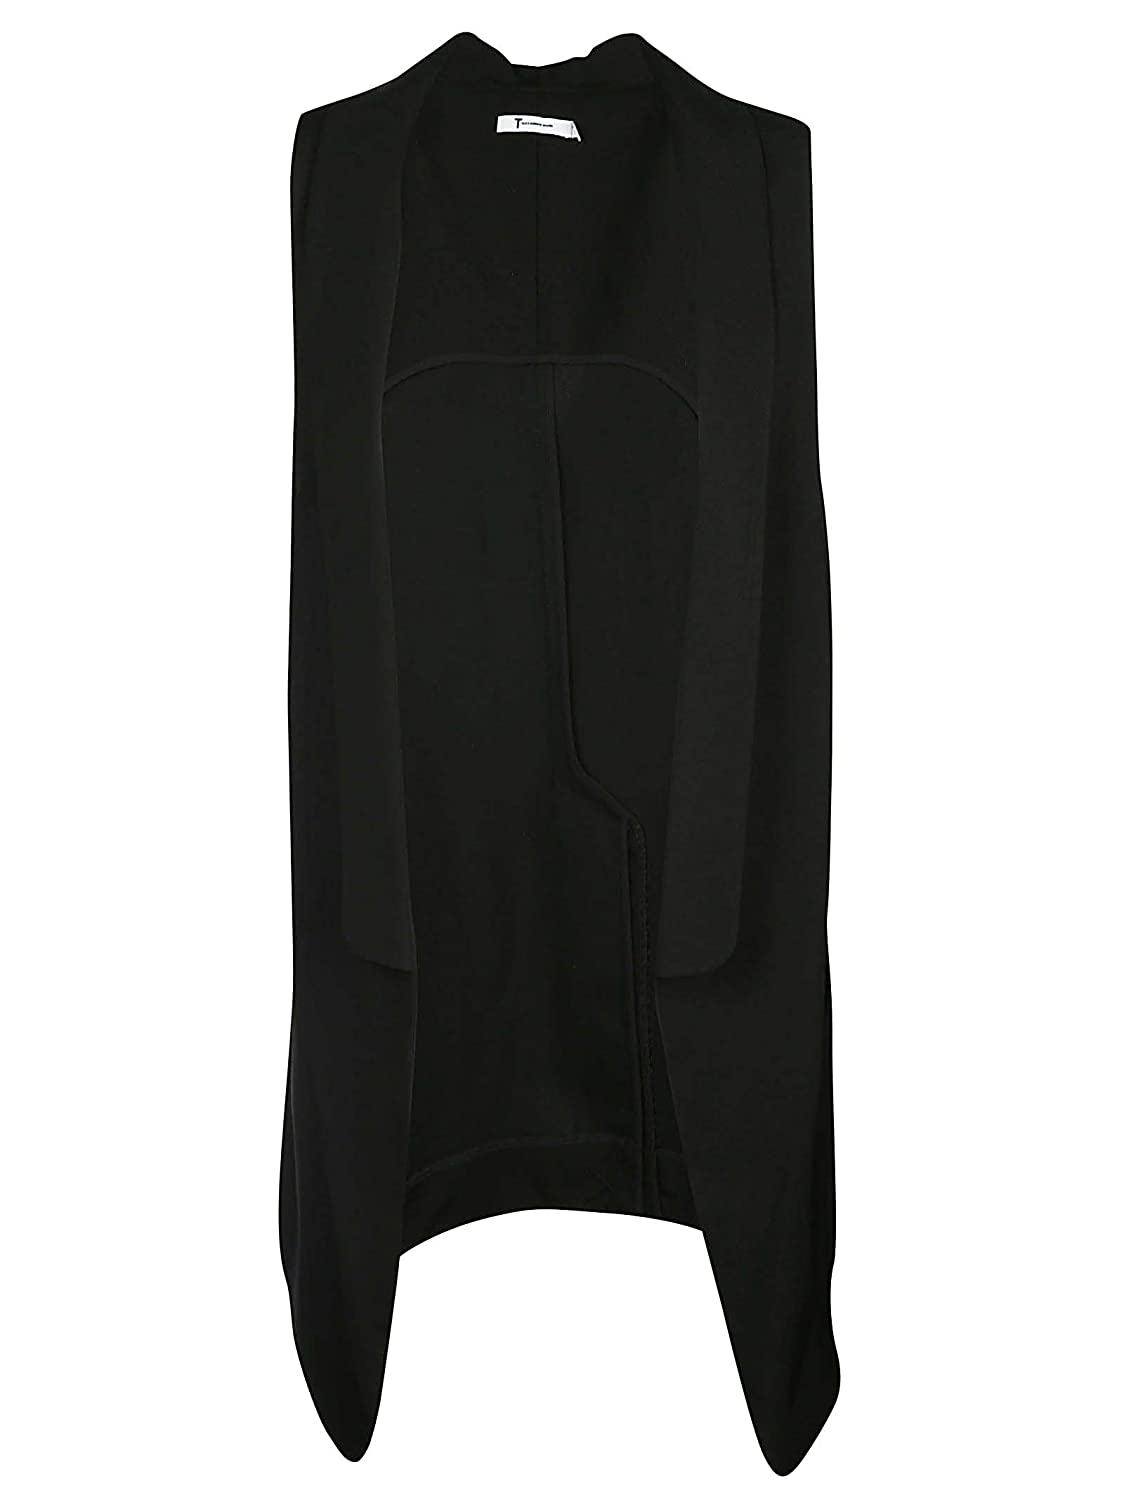 Brand Size XS ALEXANDER WANG Women's 4W282001Y7001 Black Other Materials Vest